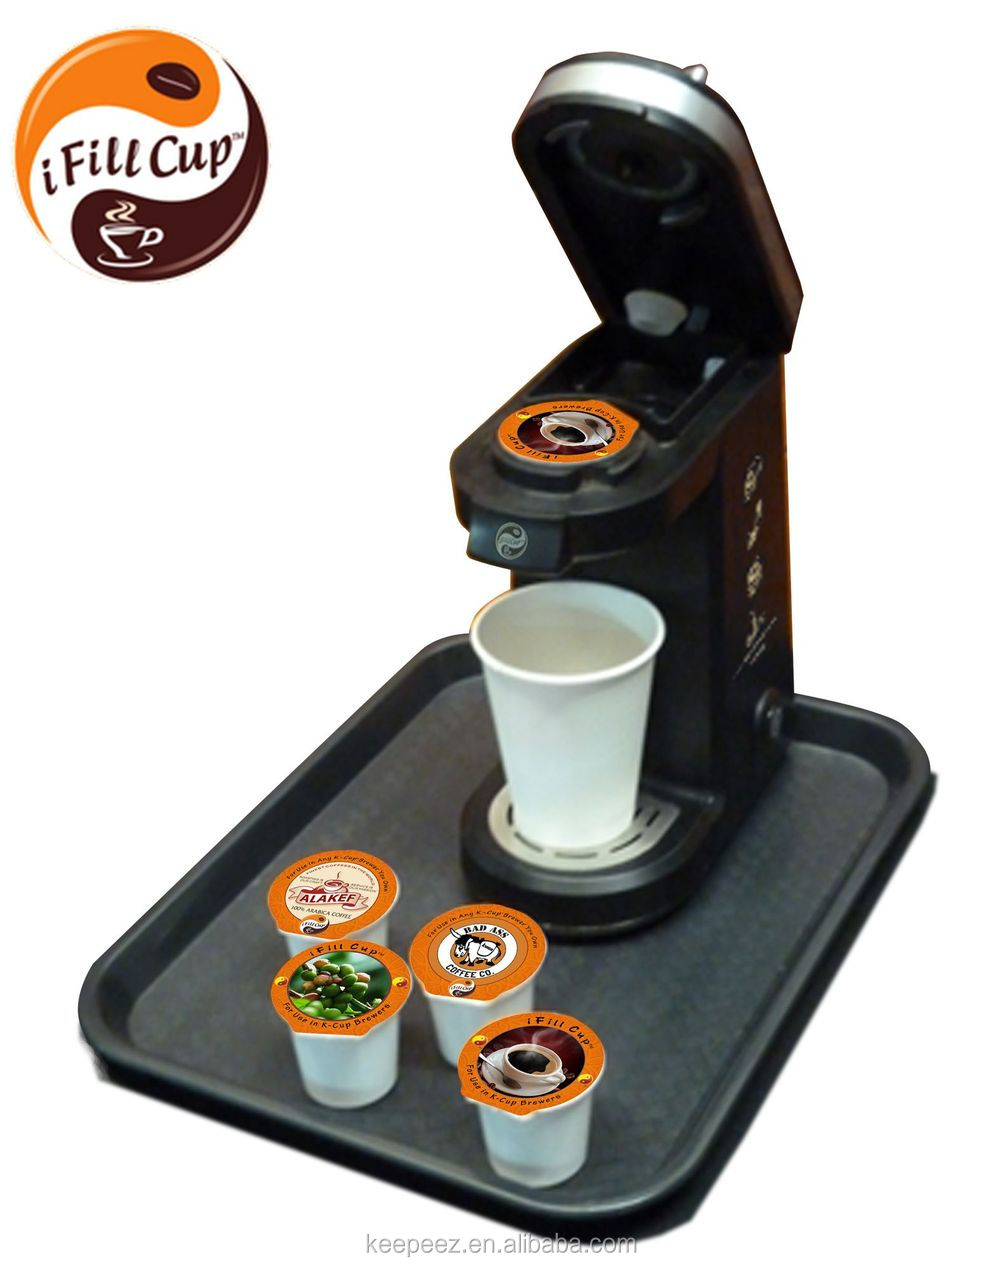 Capsule Coffee Maker Single Serve K Cup Coffee Brewer Buy K Cup